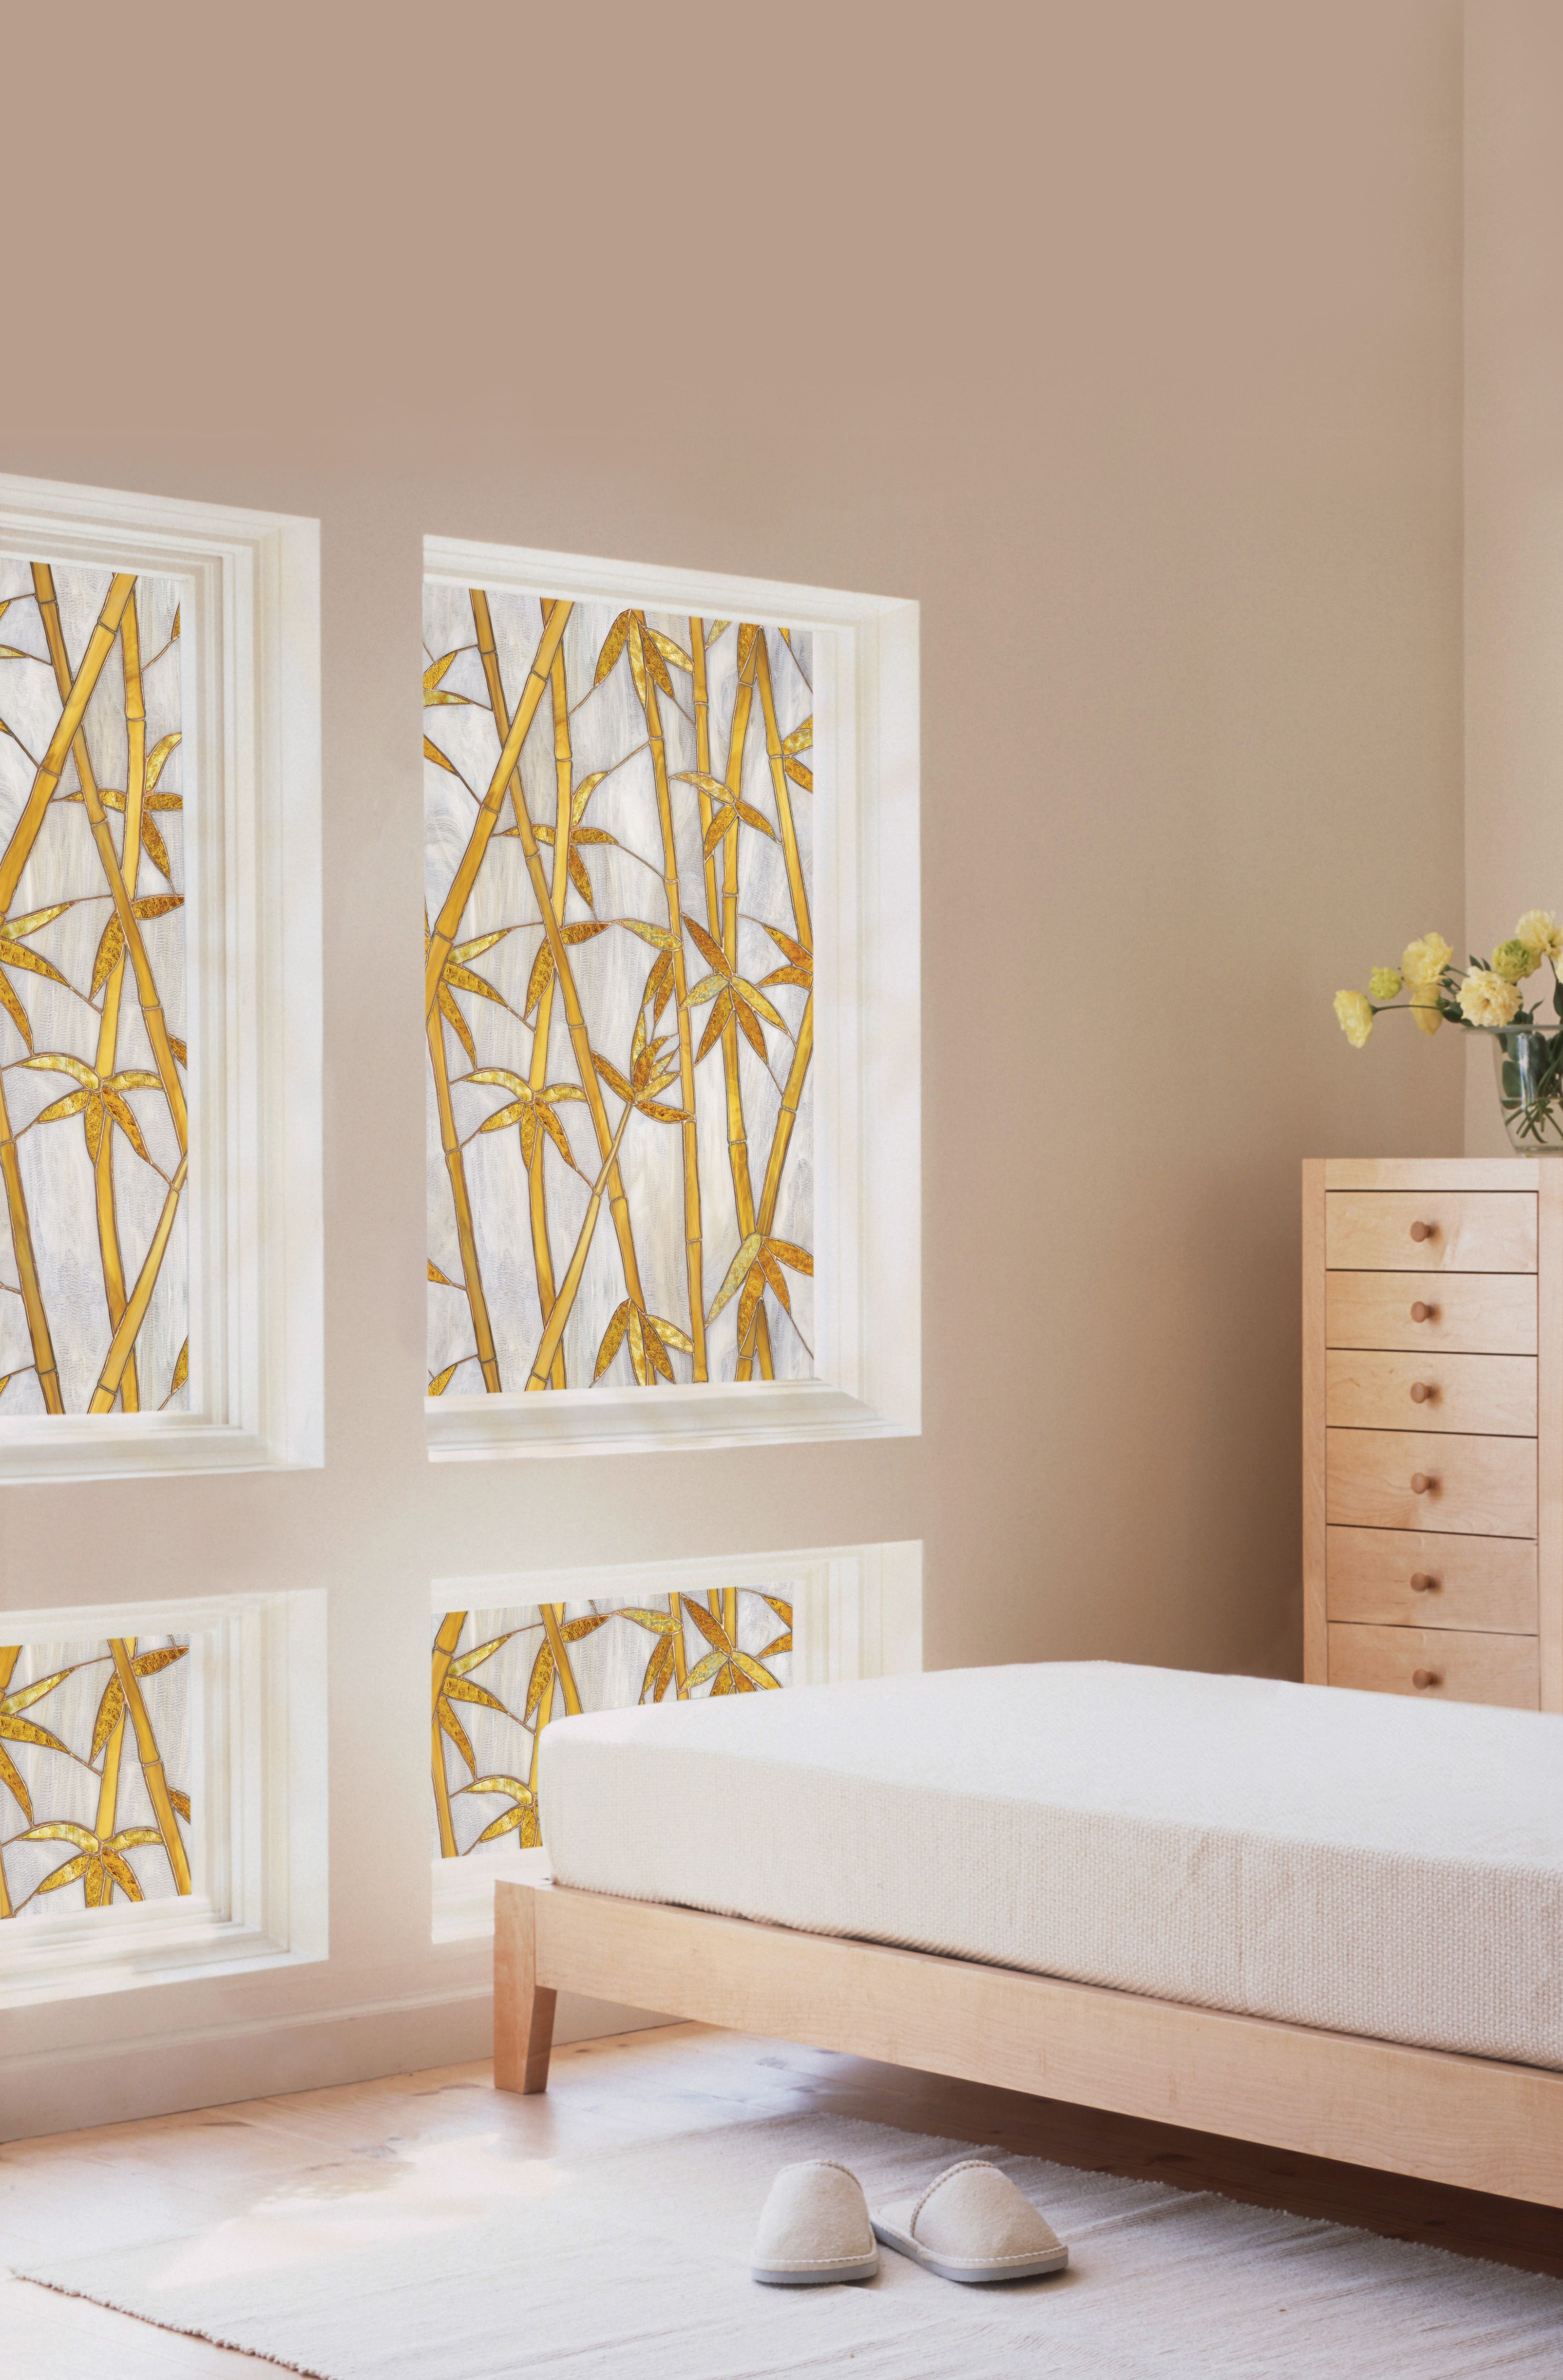 Bamboo by artscape